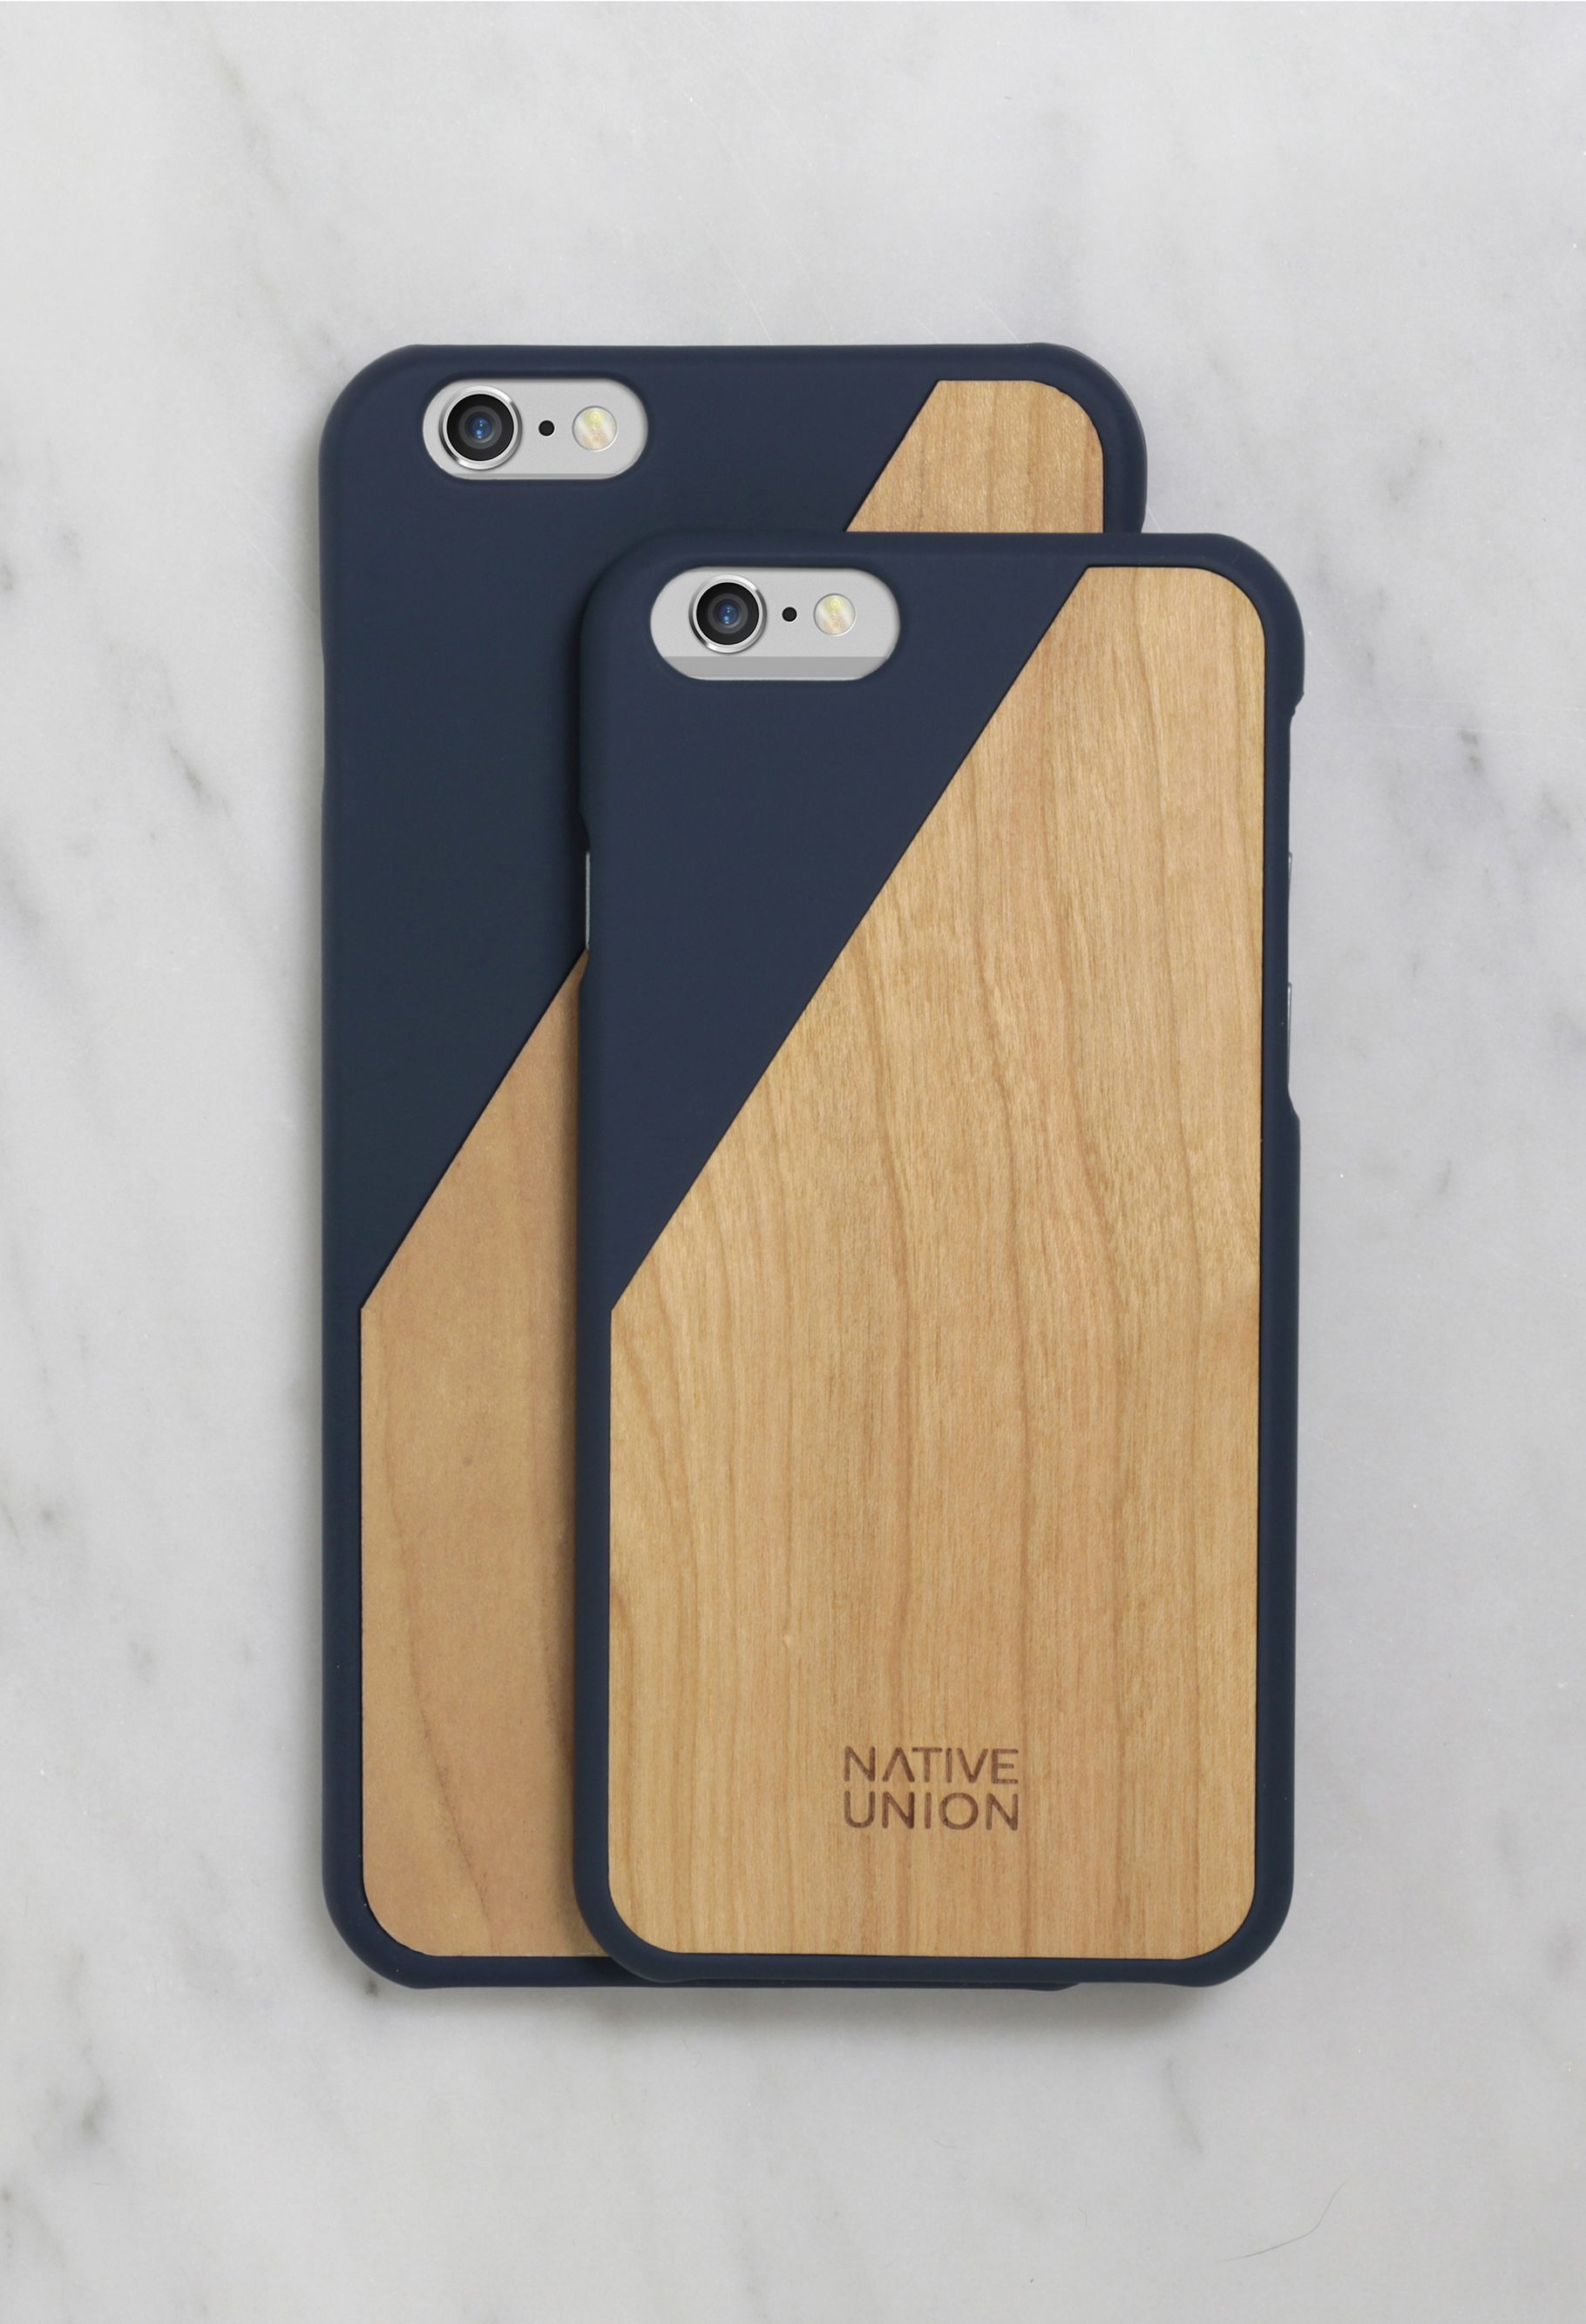 Native Union Launch A Marble Version Of Their Clic Wooden Phone Case